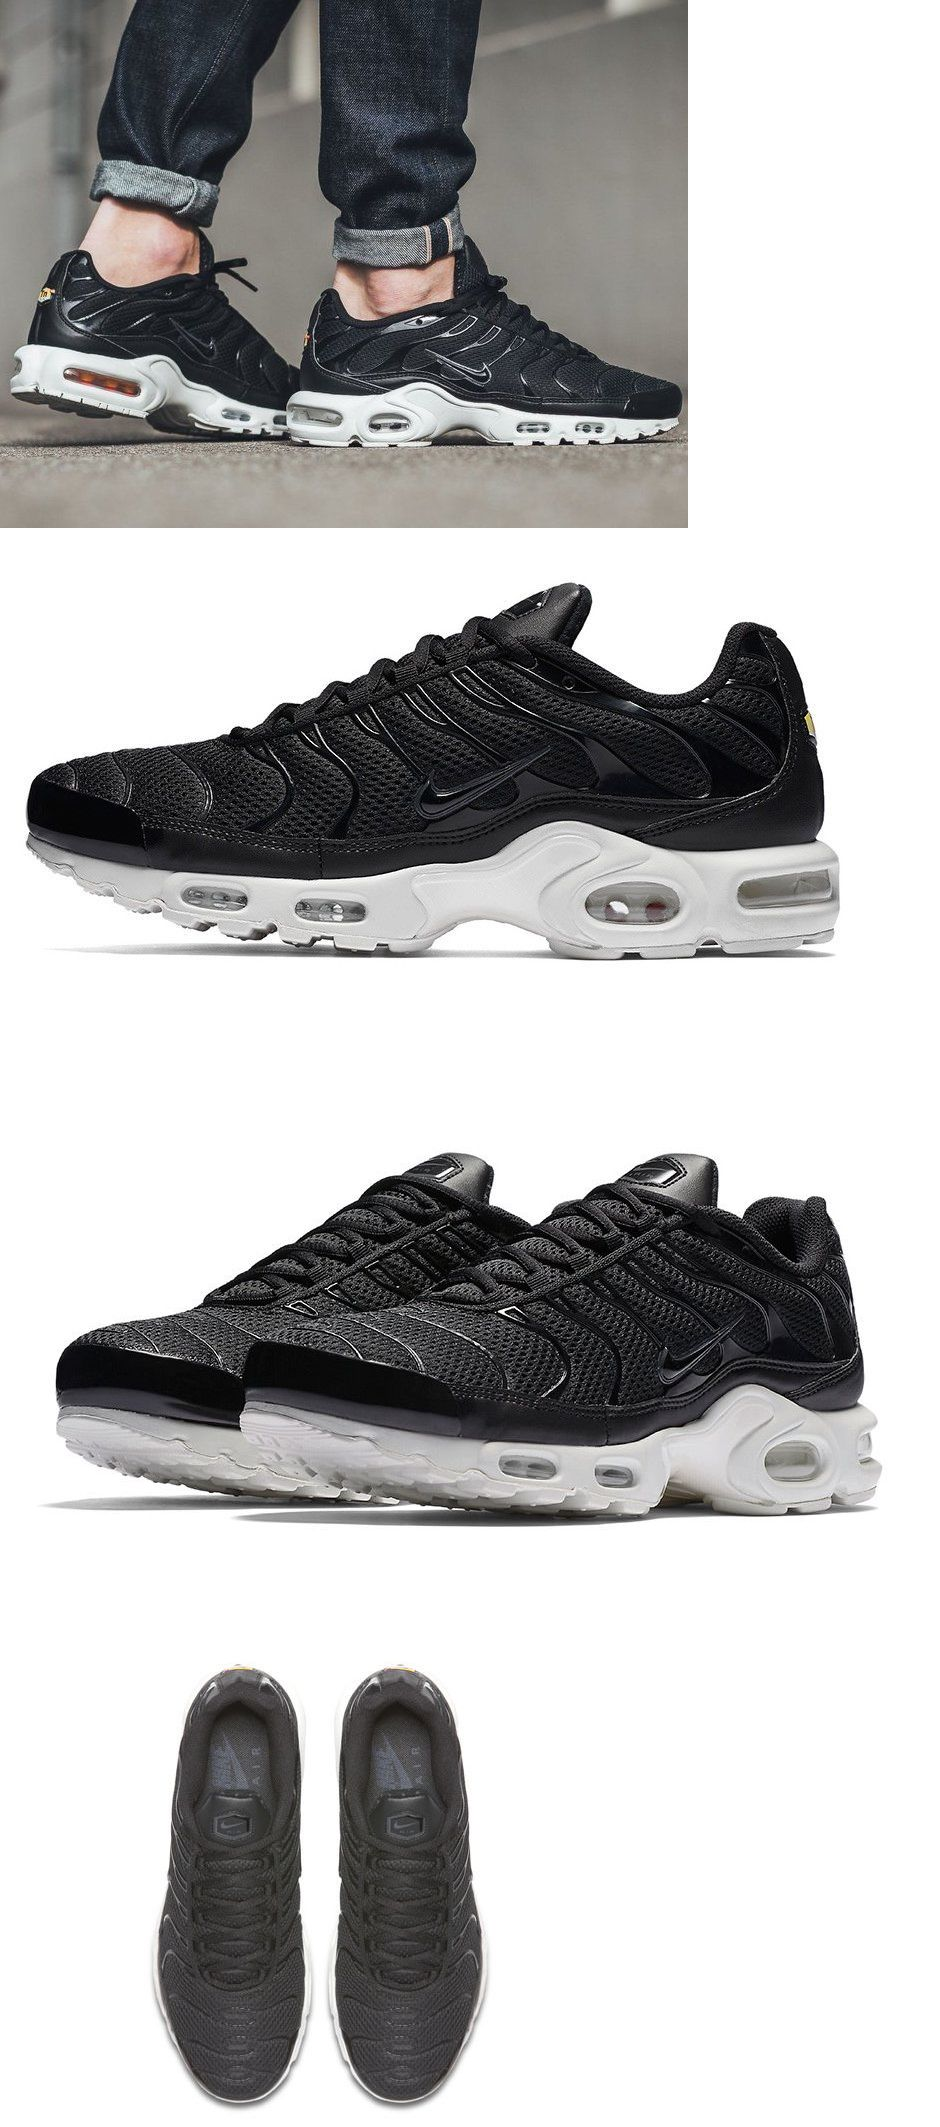 23dd1413b12 coupon for athletic 15709 new nike air max plus breeze men s sneakers black  white all